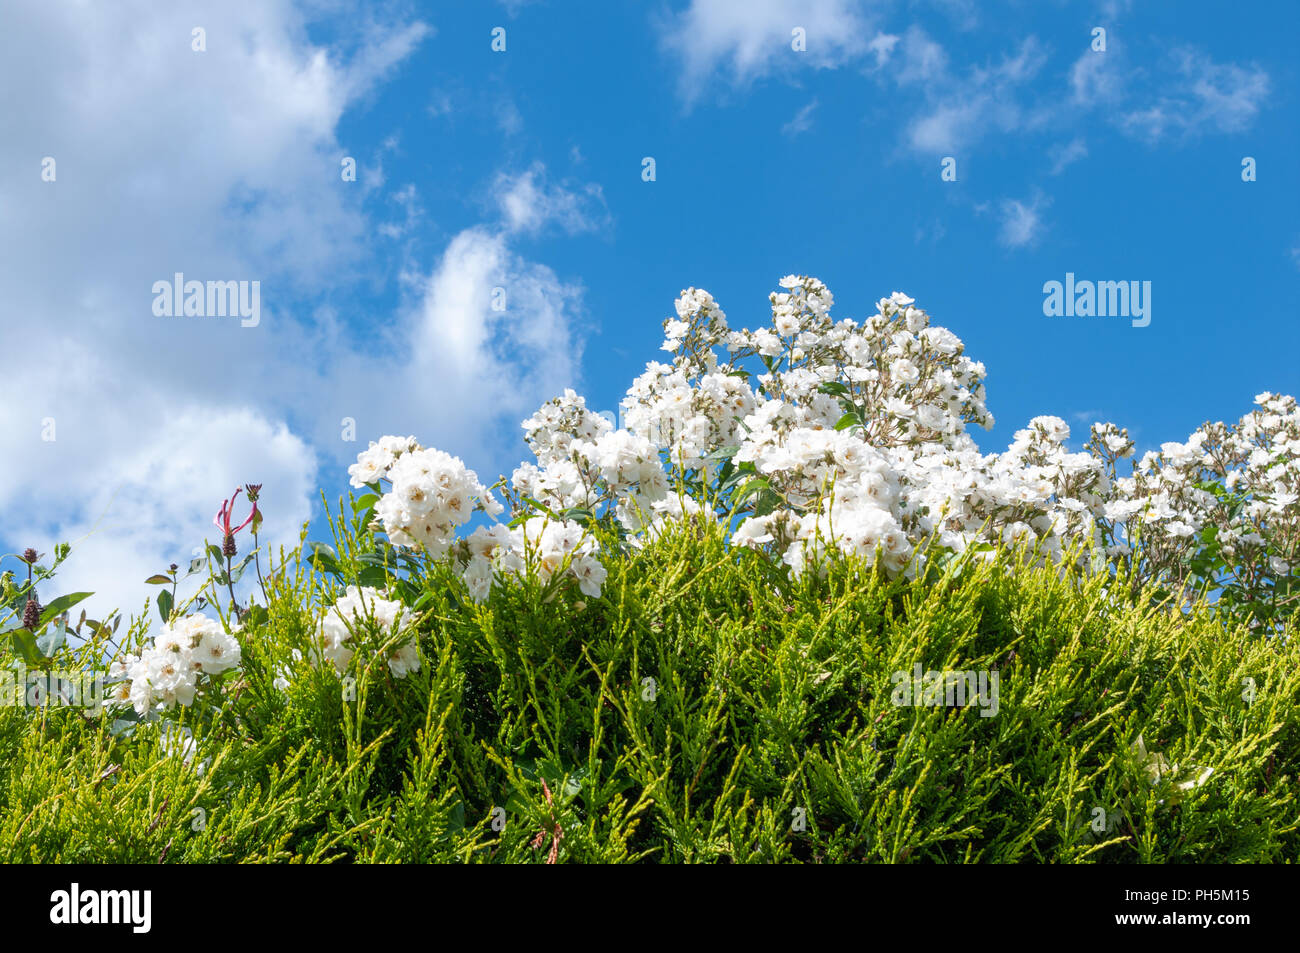 White rambling rose growing over conifer hedge. - Stock Image